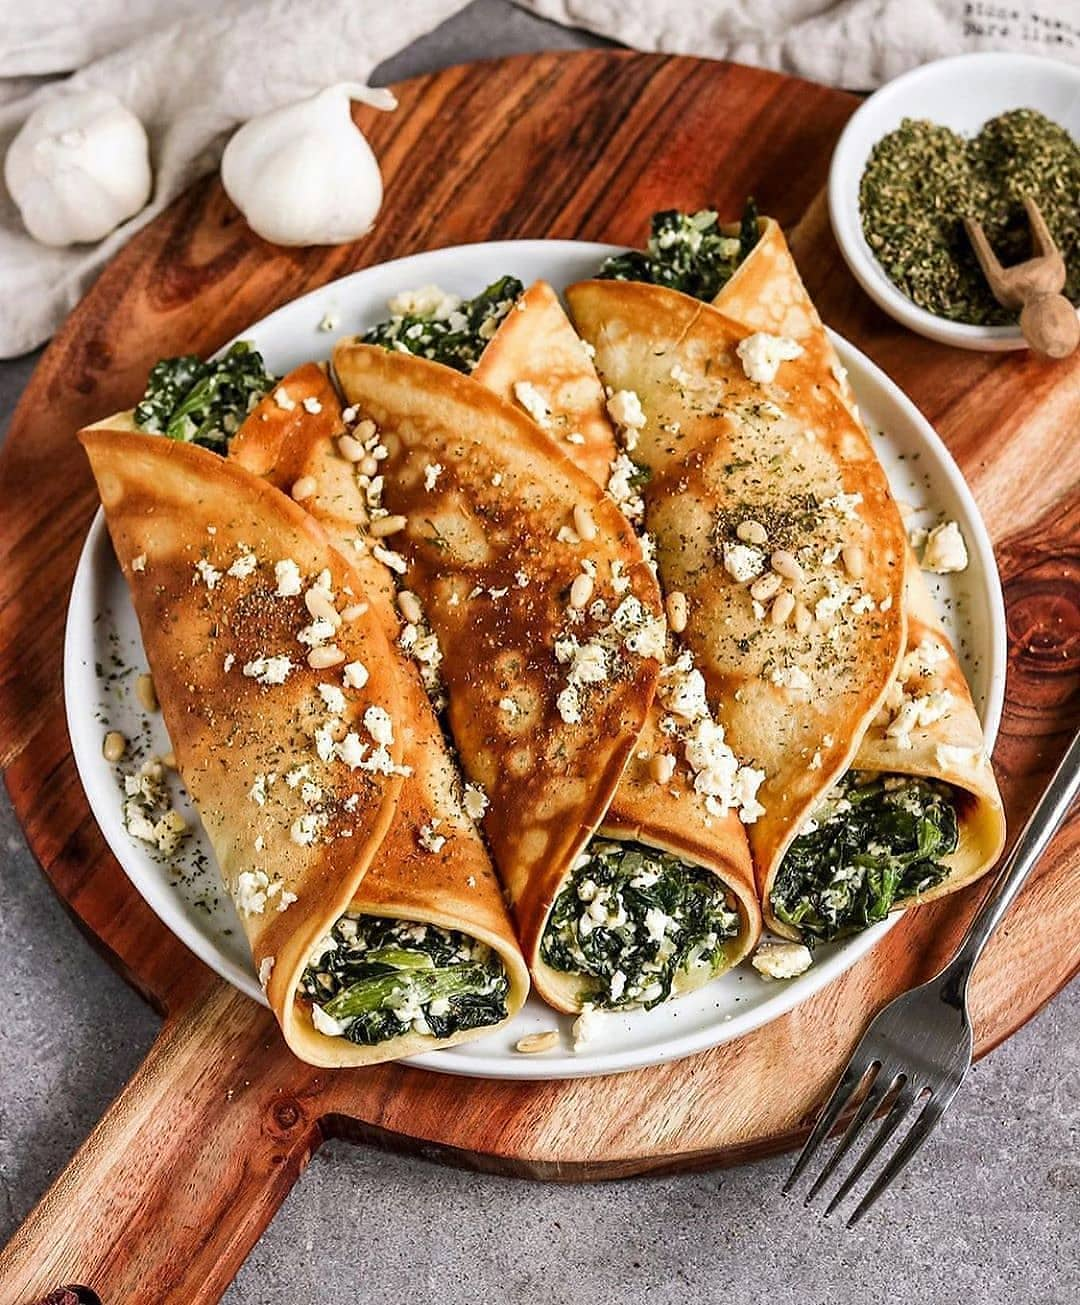 vegan oven baked filled crepes with spinach and feta by bya display image  d877f359